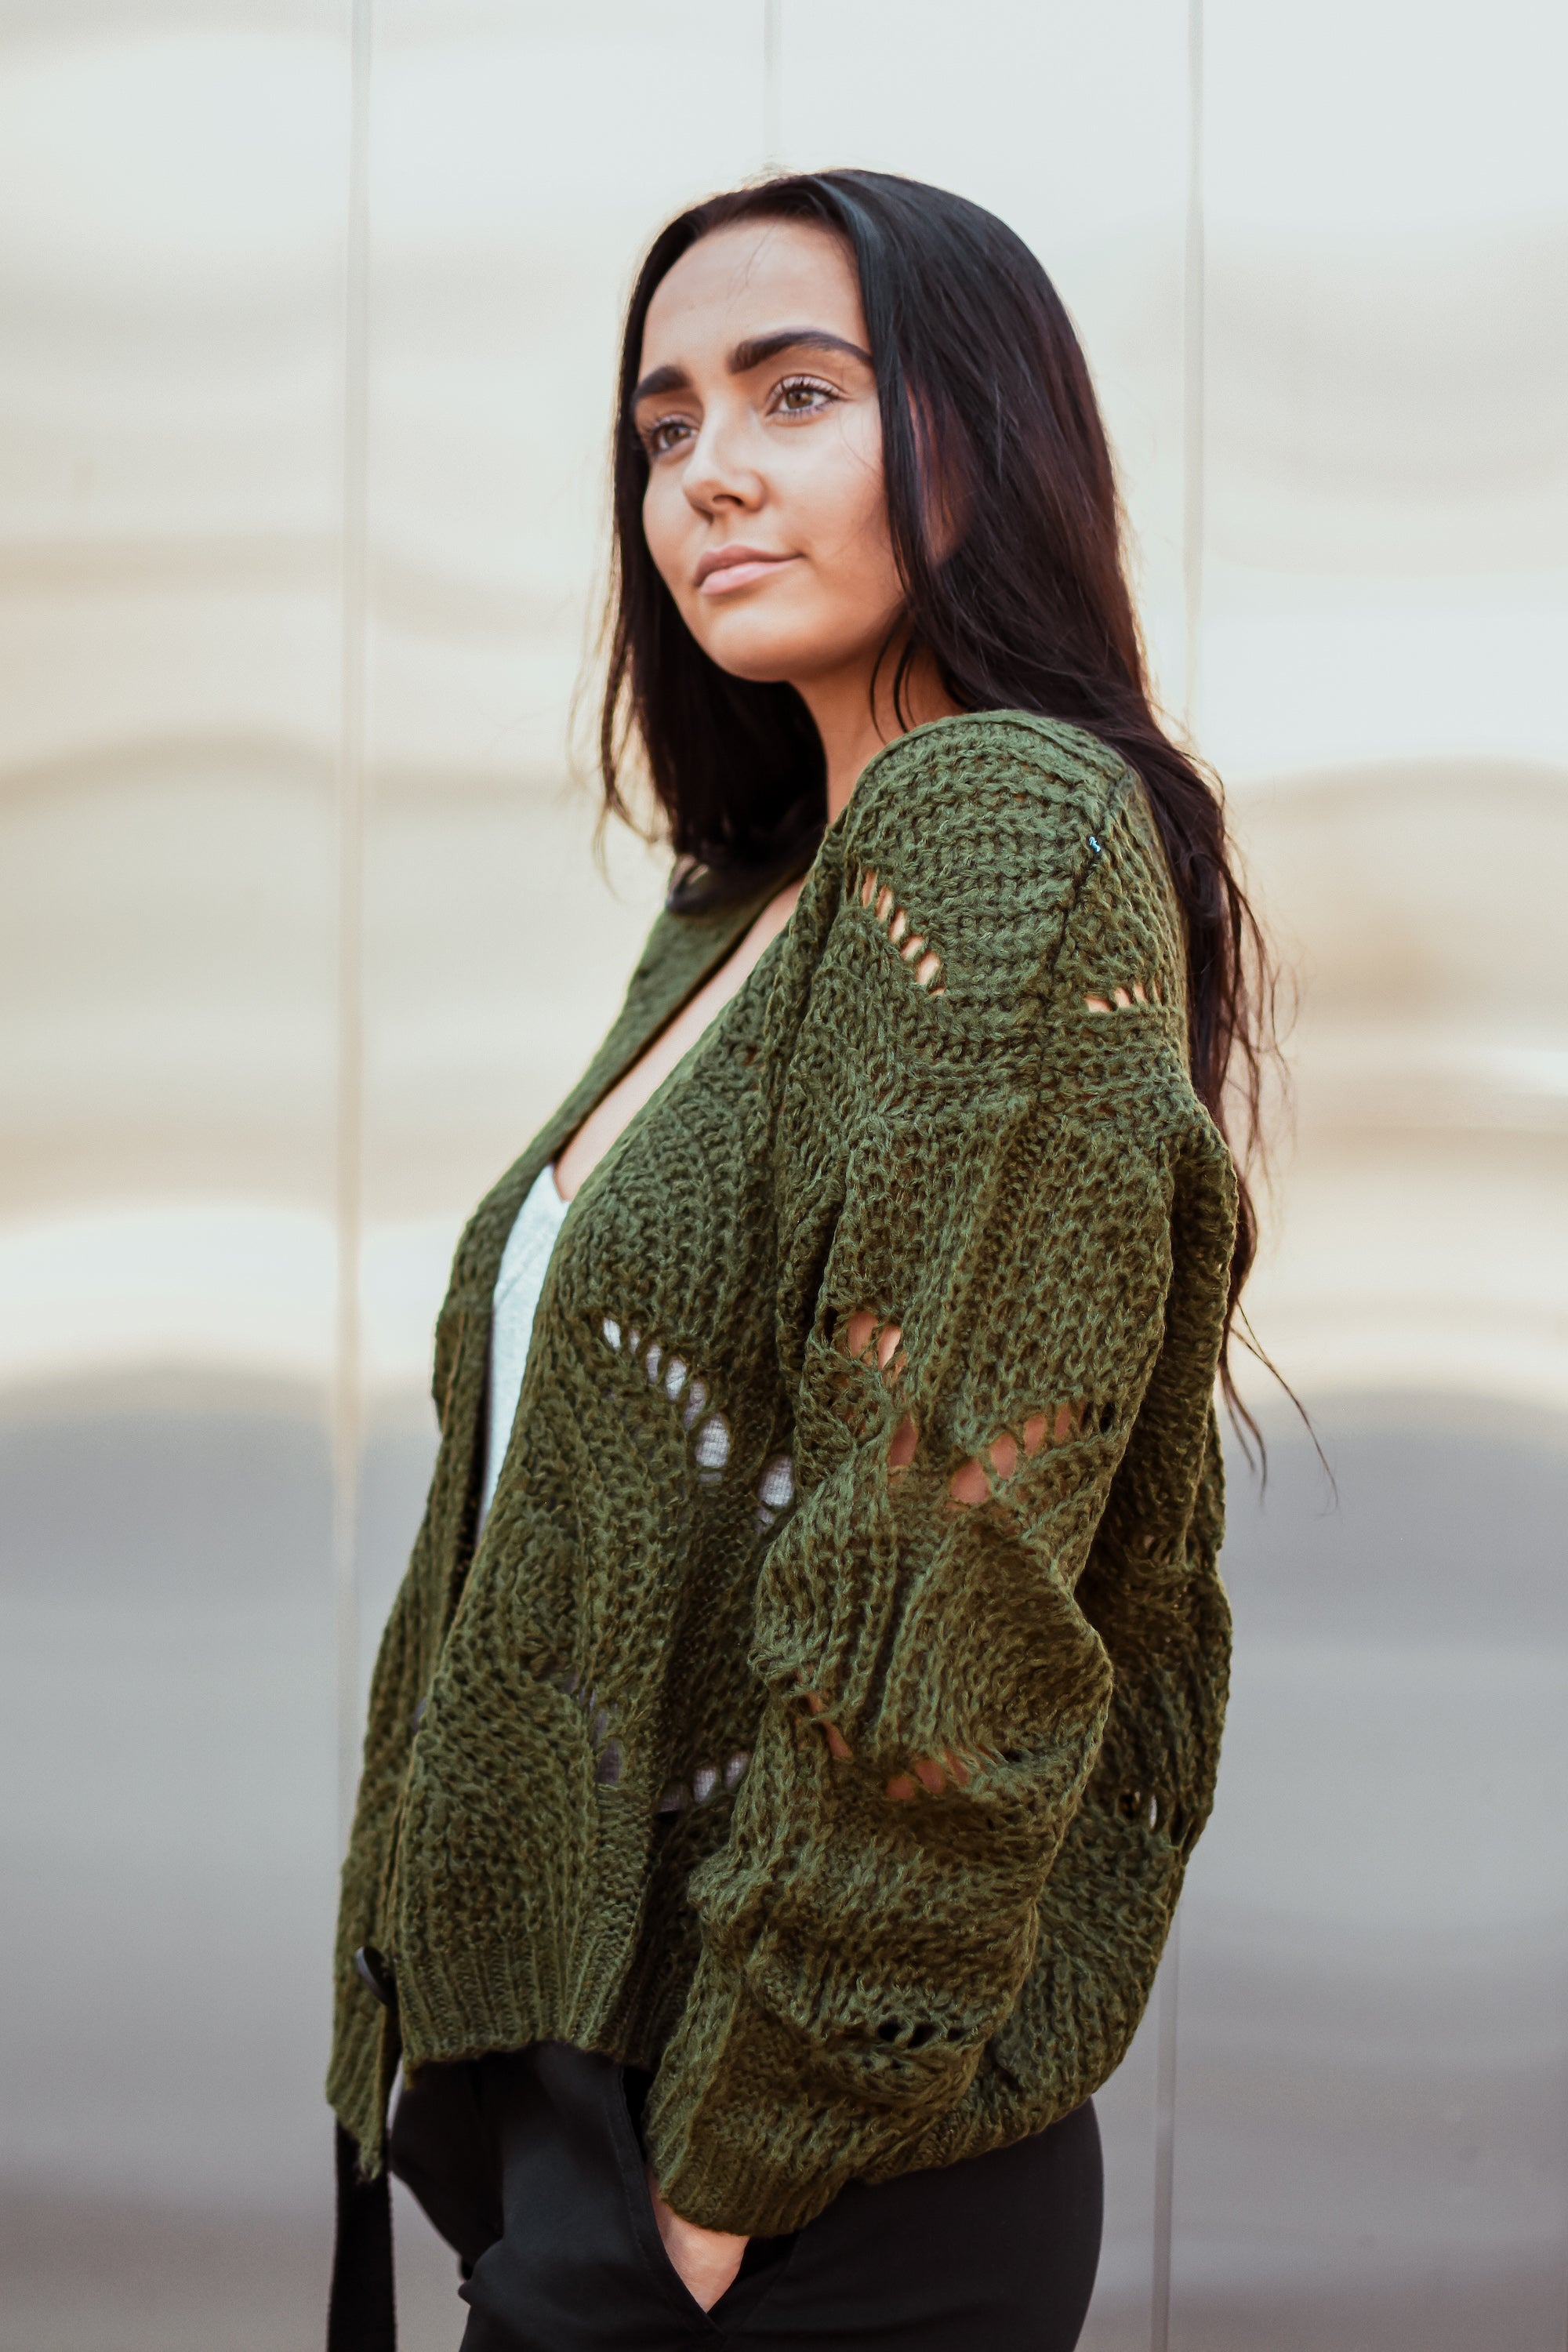 zSOLD OUTz Fan of Yours Open-Knit Cardigan in Olive